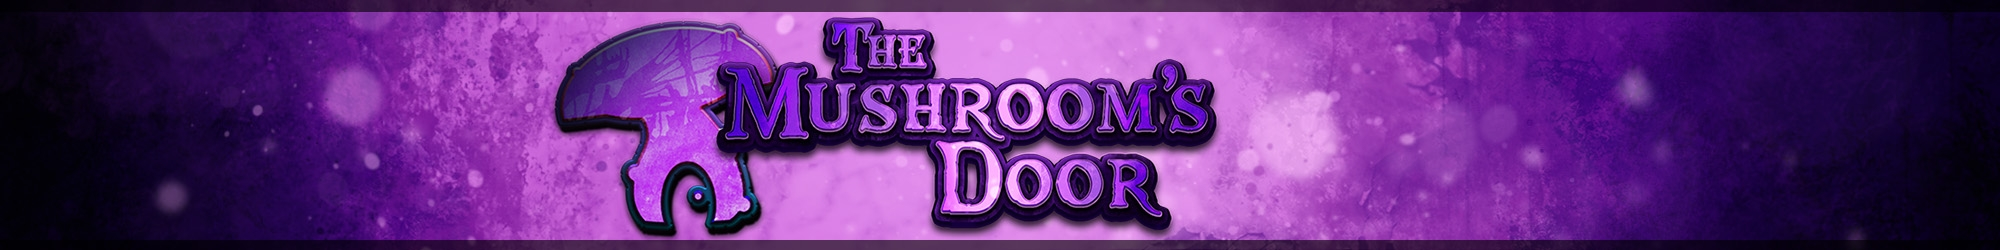 The Mushrooms Door